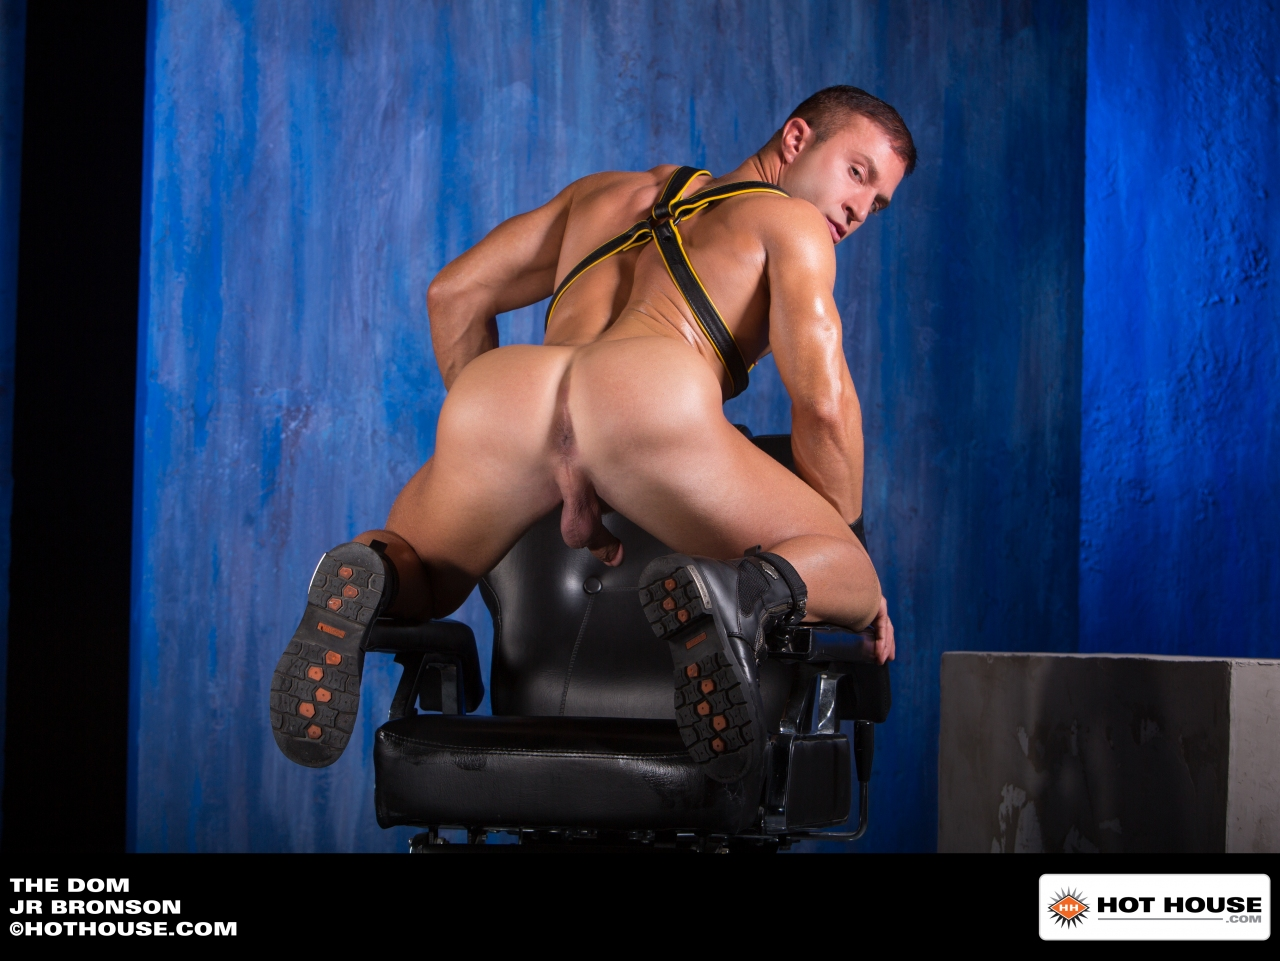 Hot House – The Dom (Scene 1)